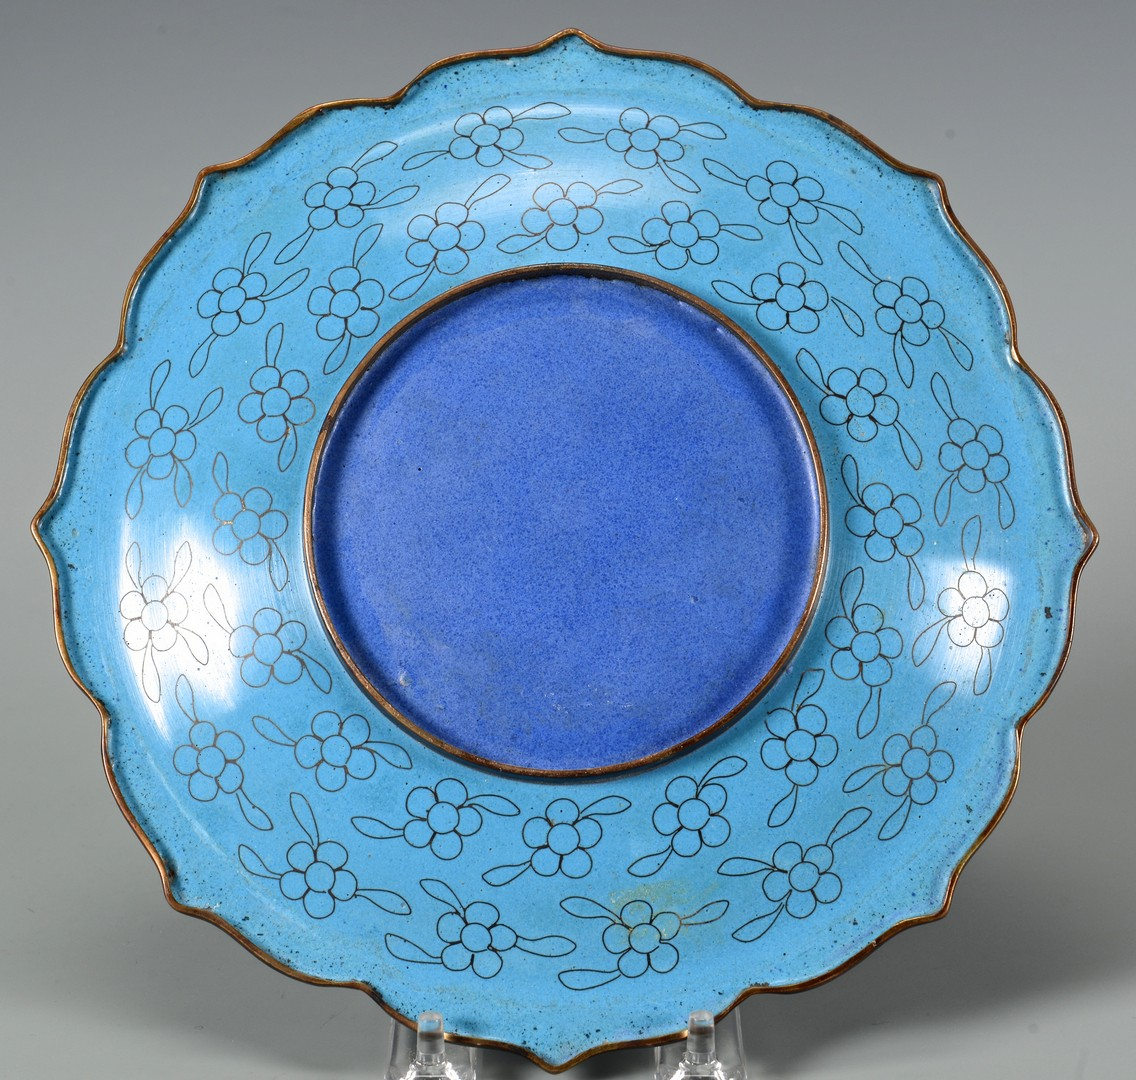 Lot 3832392: Cloisonne Plate and World's Fair Peacock Ewer